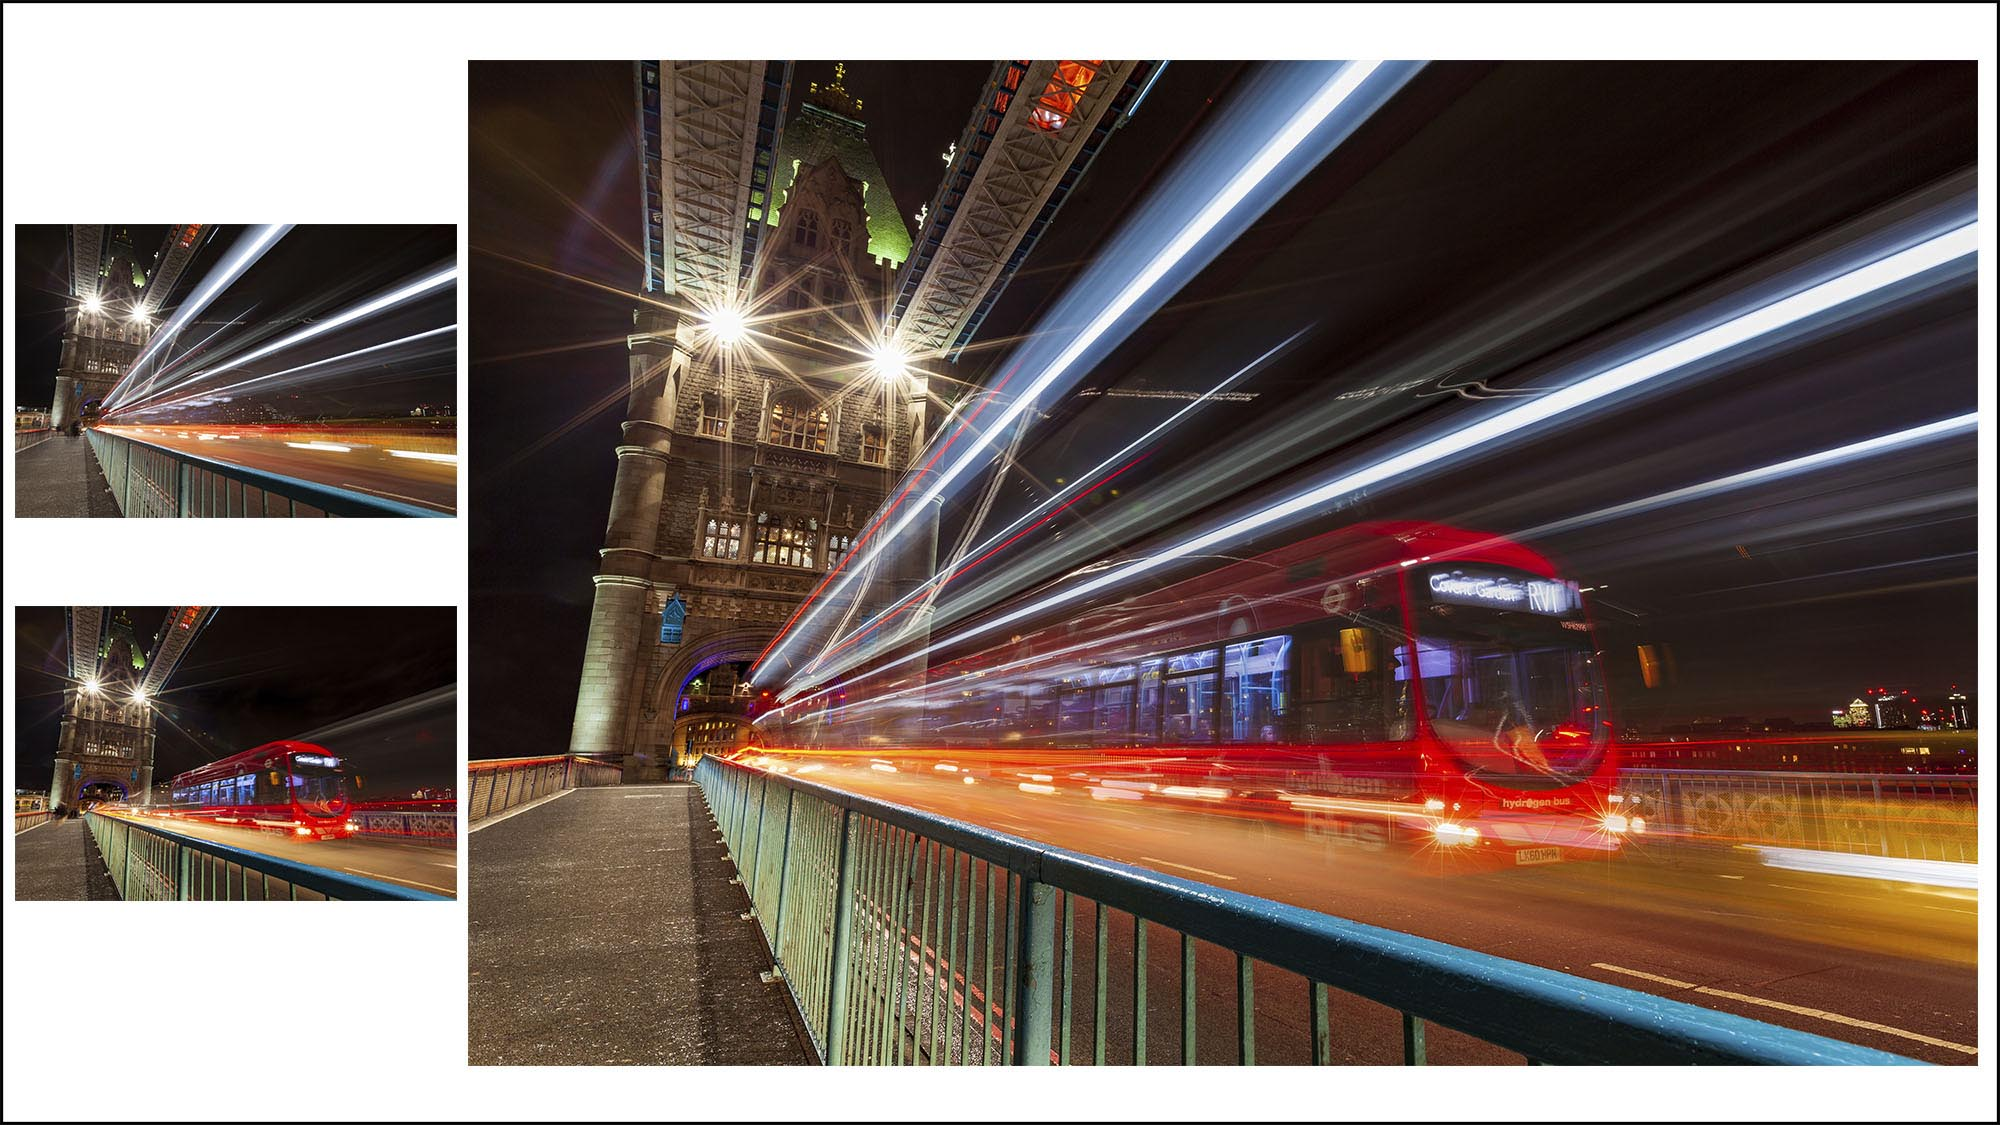 Lesson 12 – Light Trail Photography – Edit - In this edit, I'll teach you how to enhance the colours and contrast of night scenes, remove people and objects that get in your way and we'll look at bringing through a bus travelling in the other direction using layer masks in Photoshop. The Raw files are provided so you can work along with me.